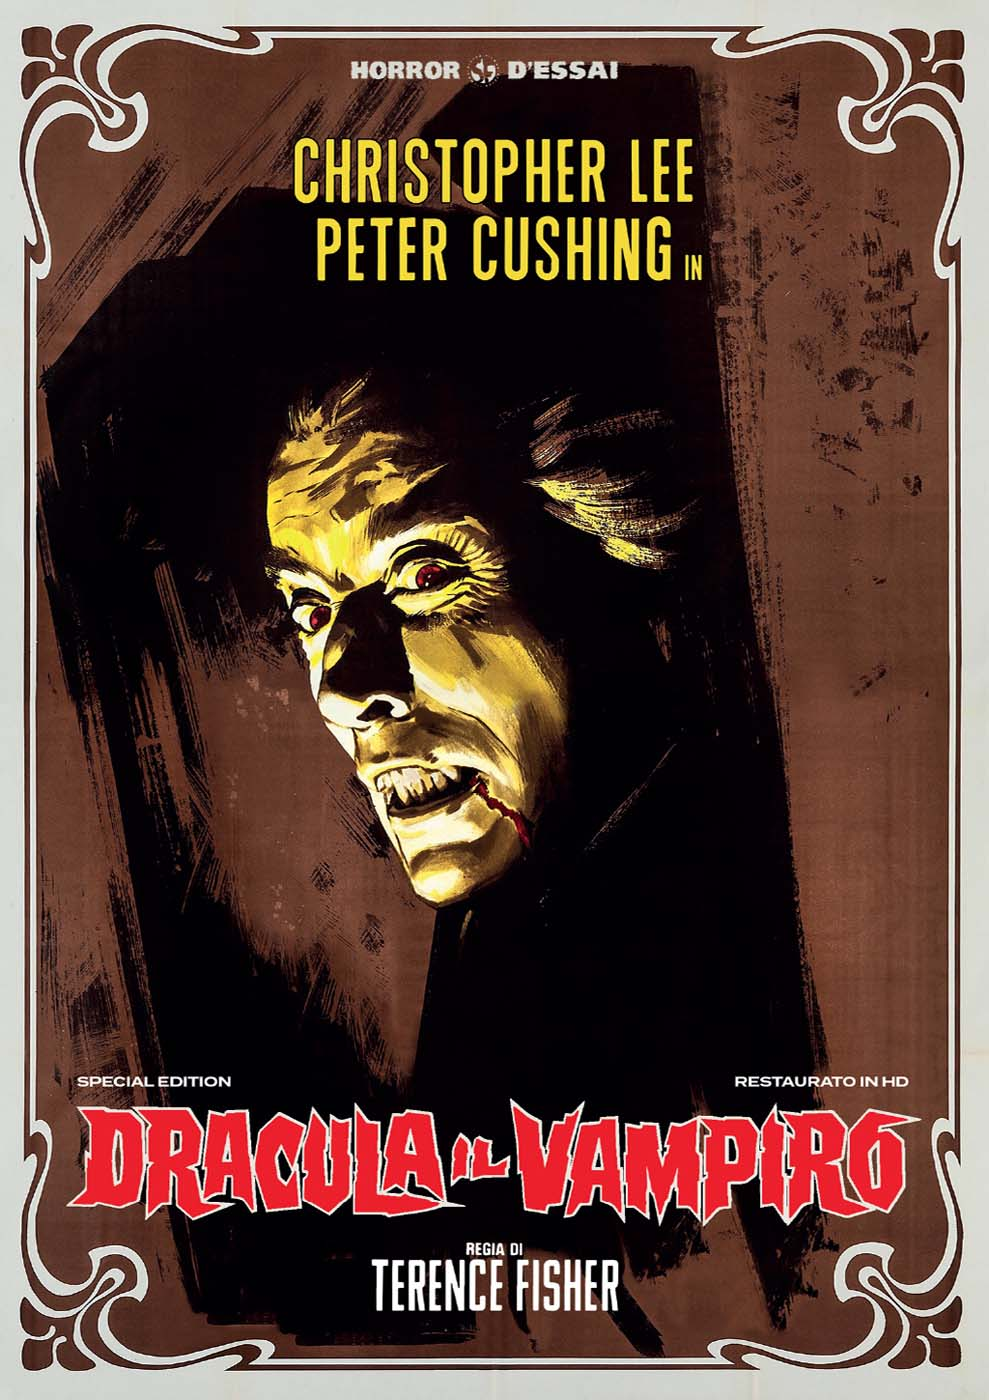 DRACULA IL VAMPIRO - SPECIAL EDITION (RESTAURATO IN HD) (DVD)